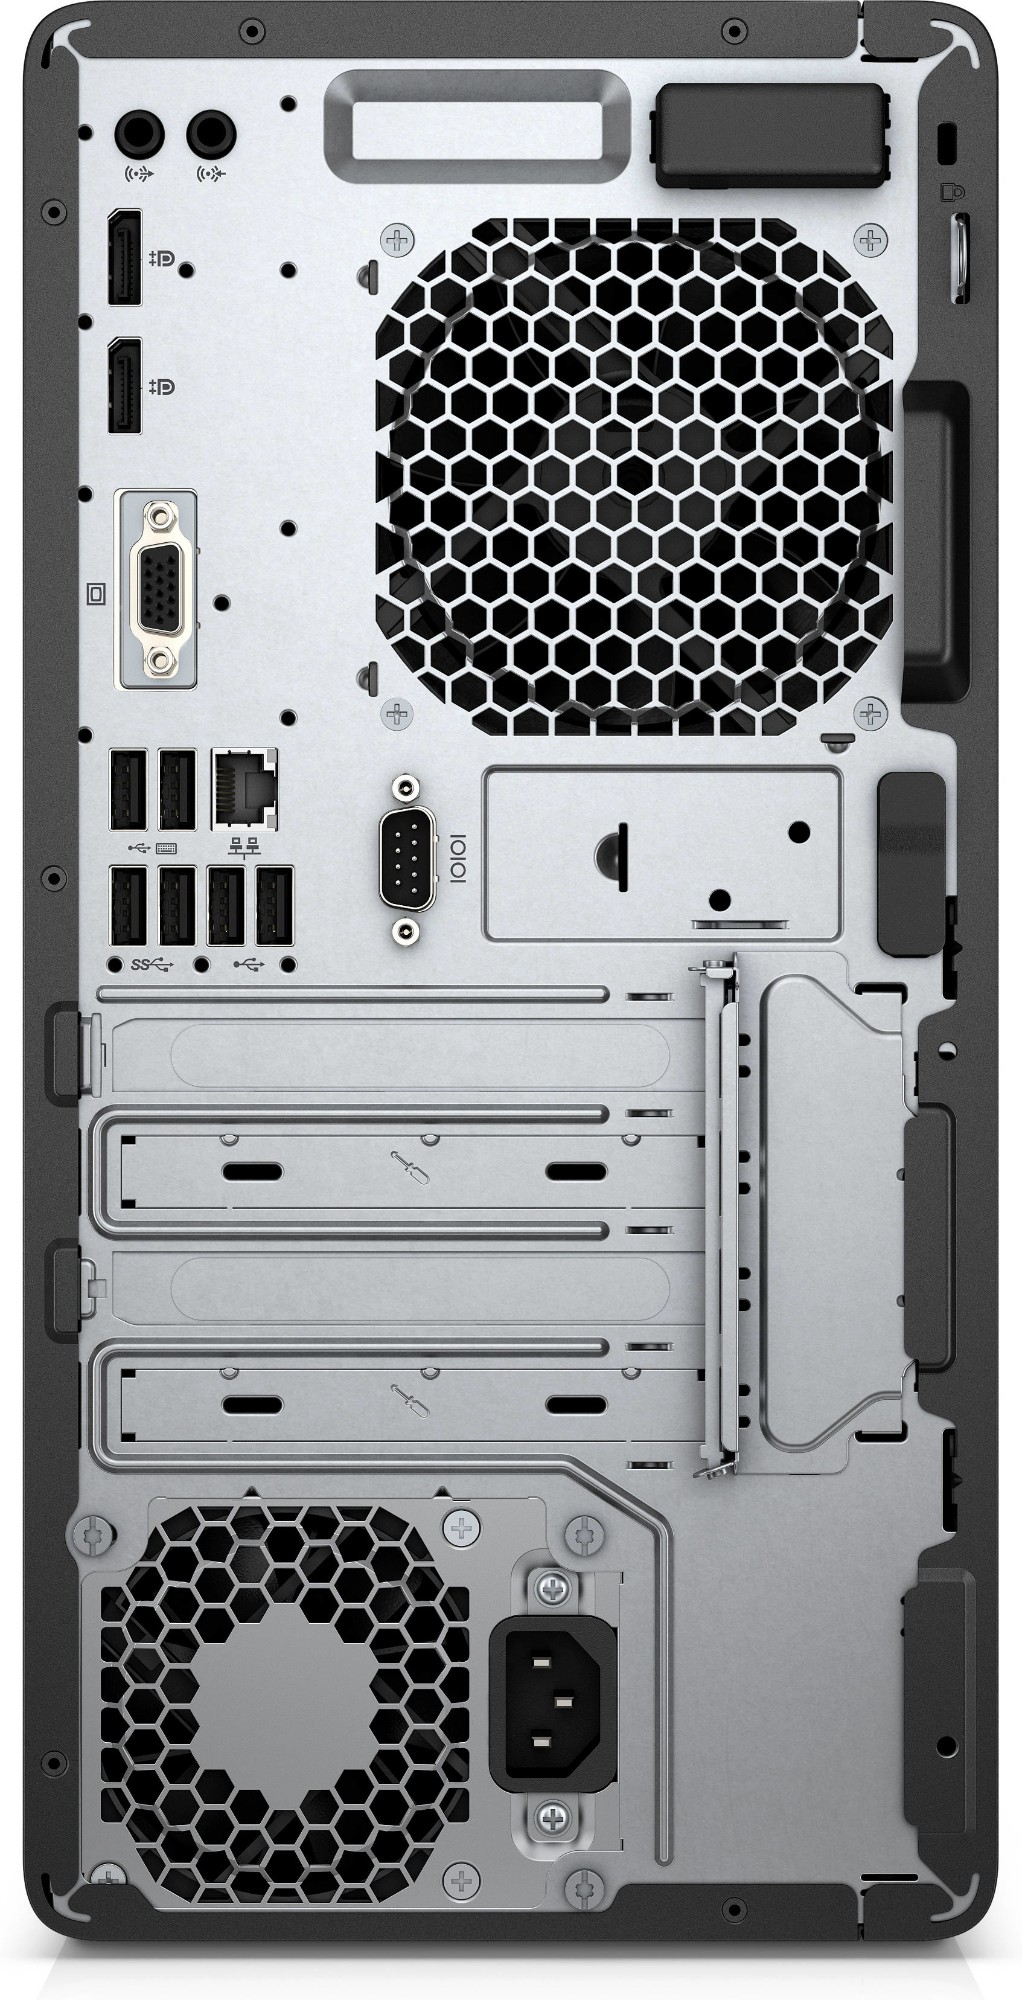 HP ProDesk 600 G3 Microtower PC, 332 in distributor ...